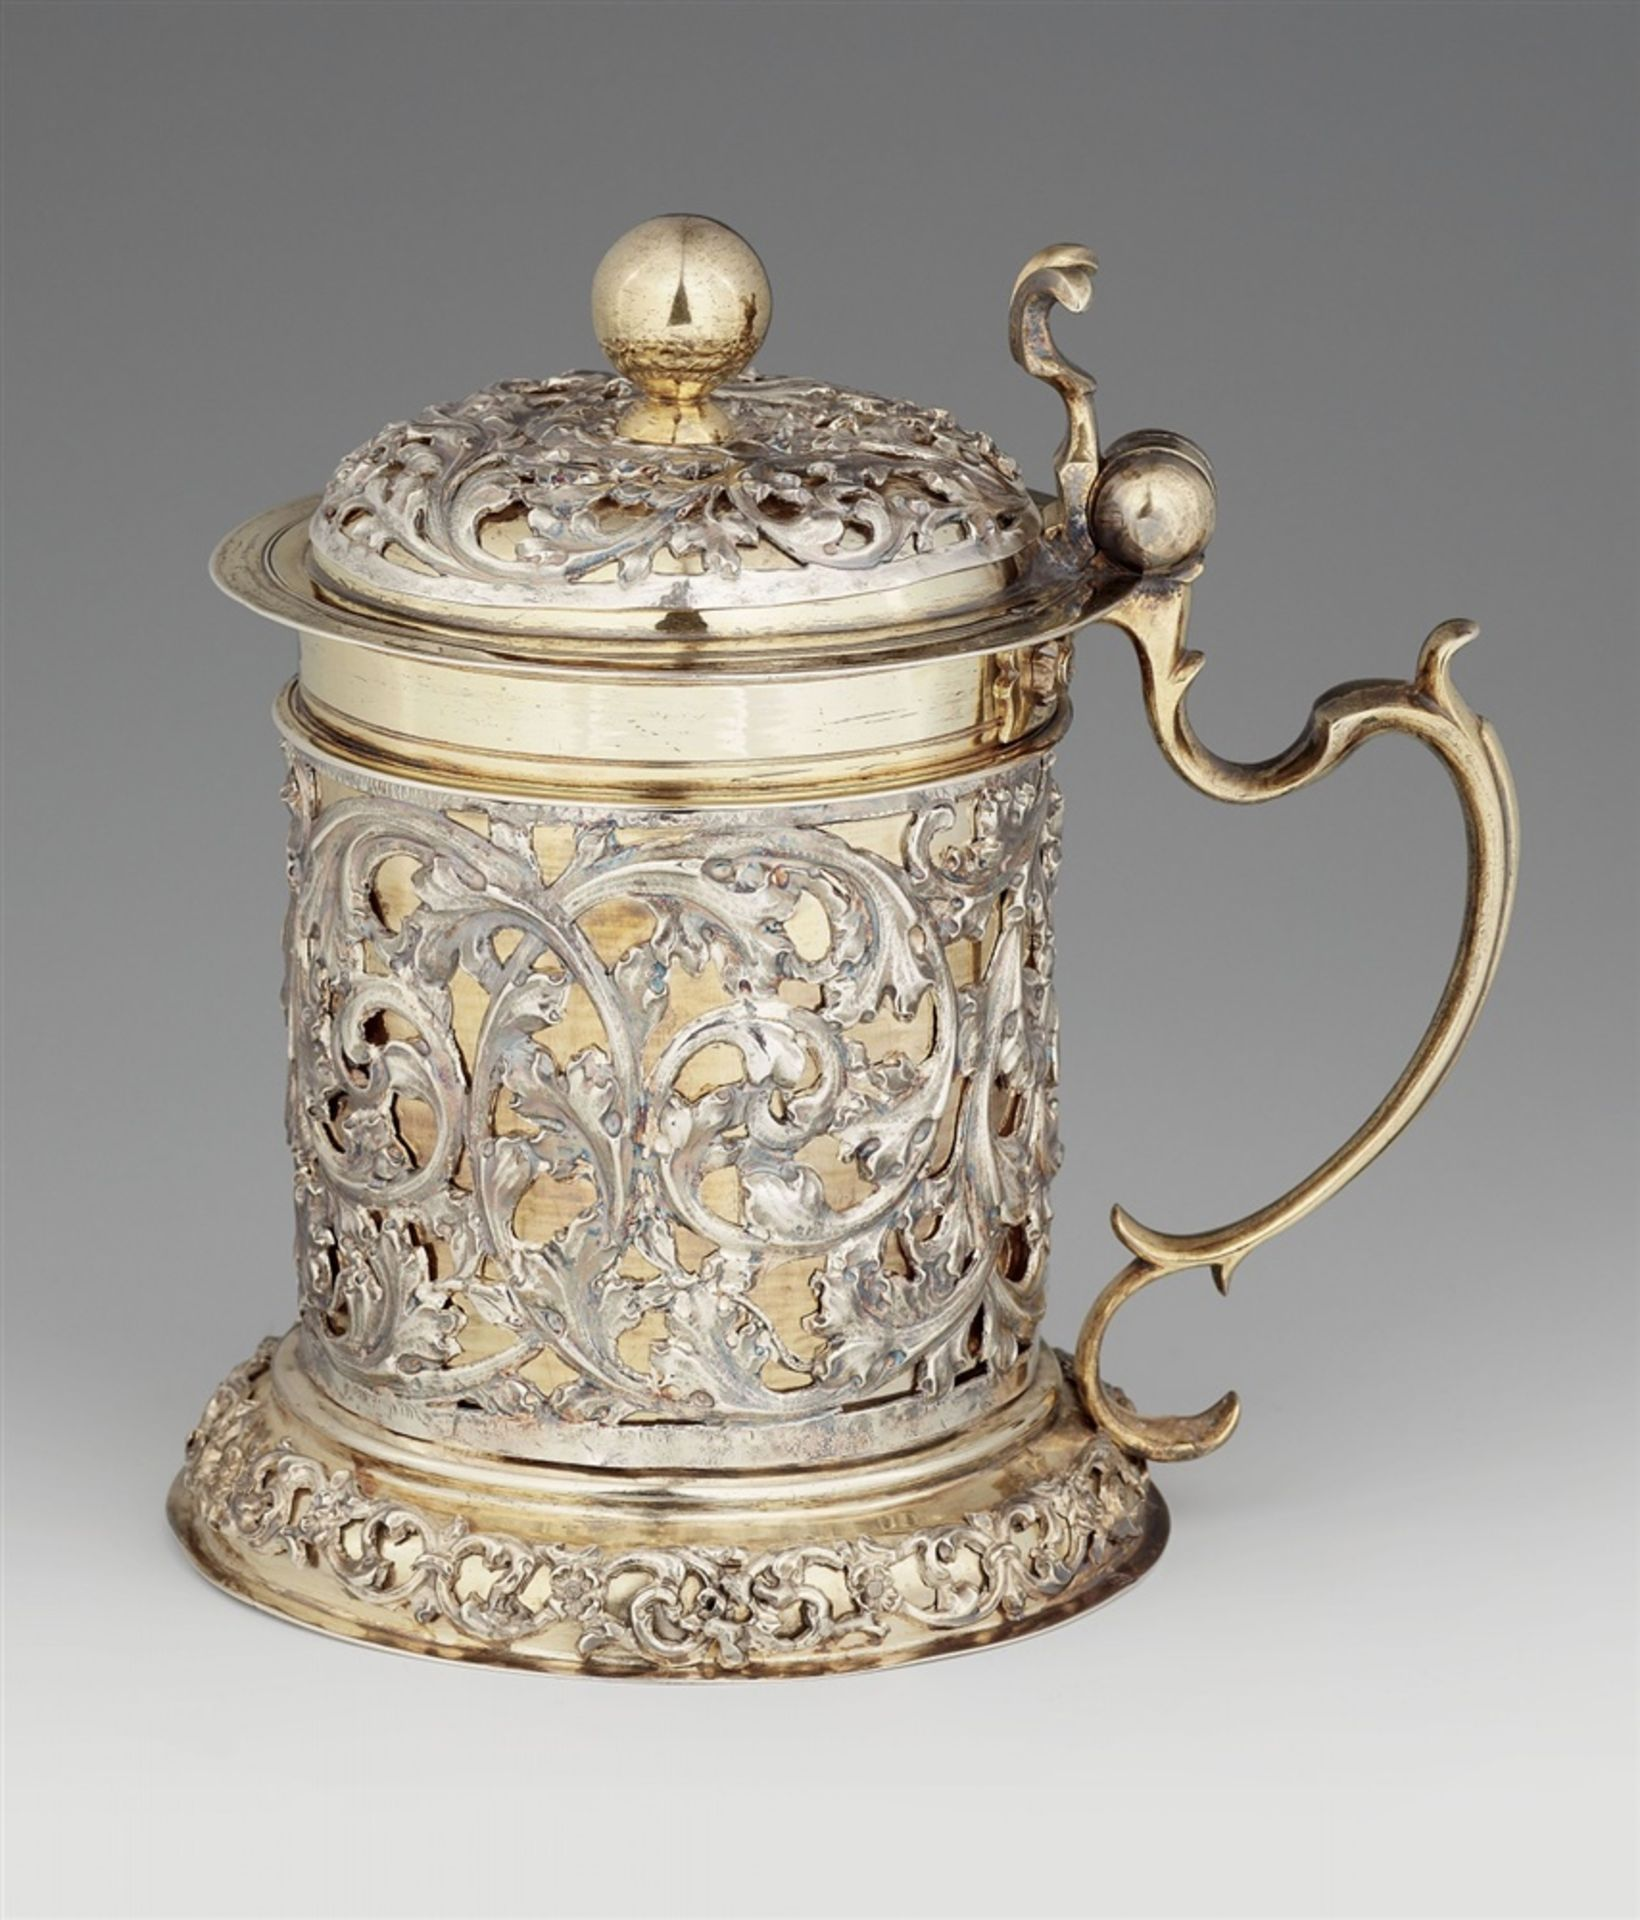 Los 706 - A Baroque silver tankardSilver; partly gilded. Parcel-gilt silver tankard, cylindrical corpus